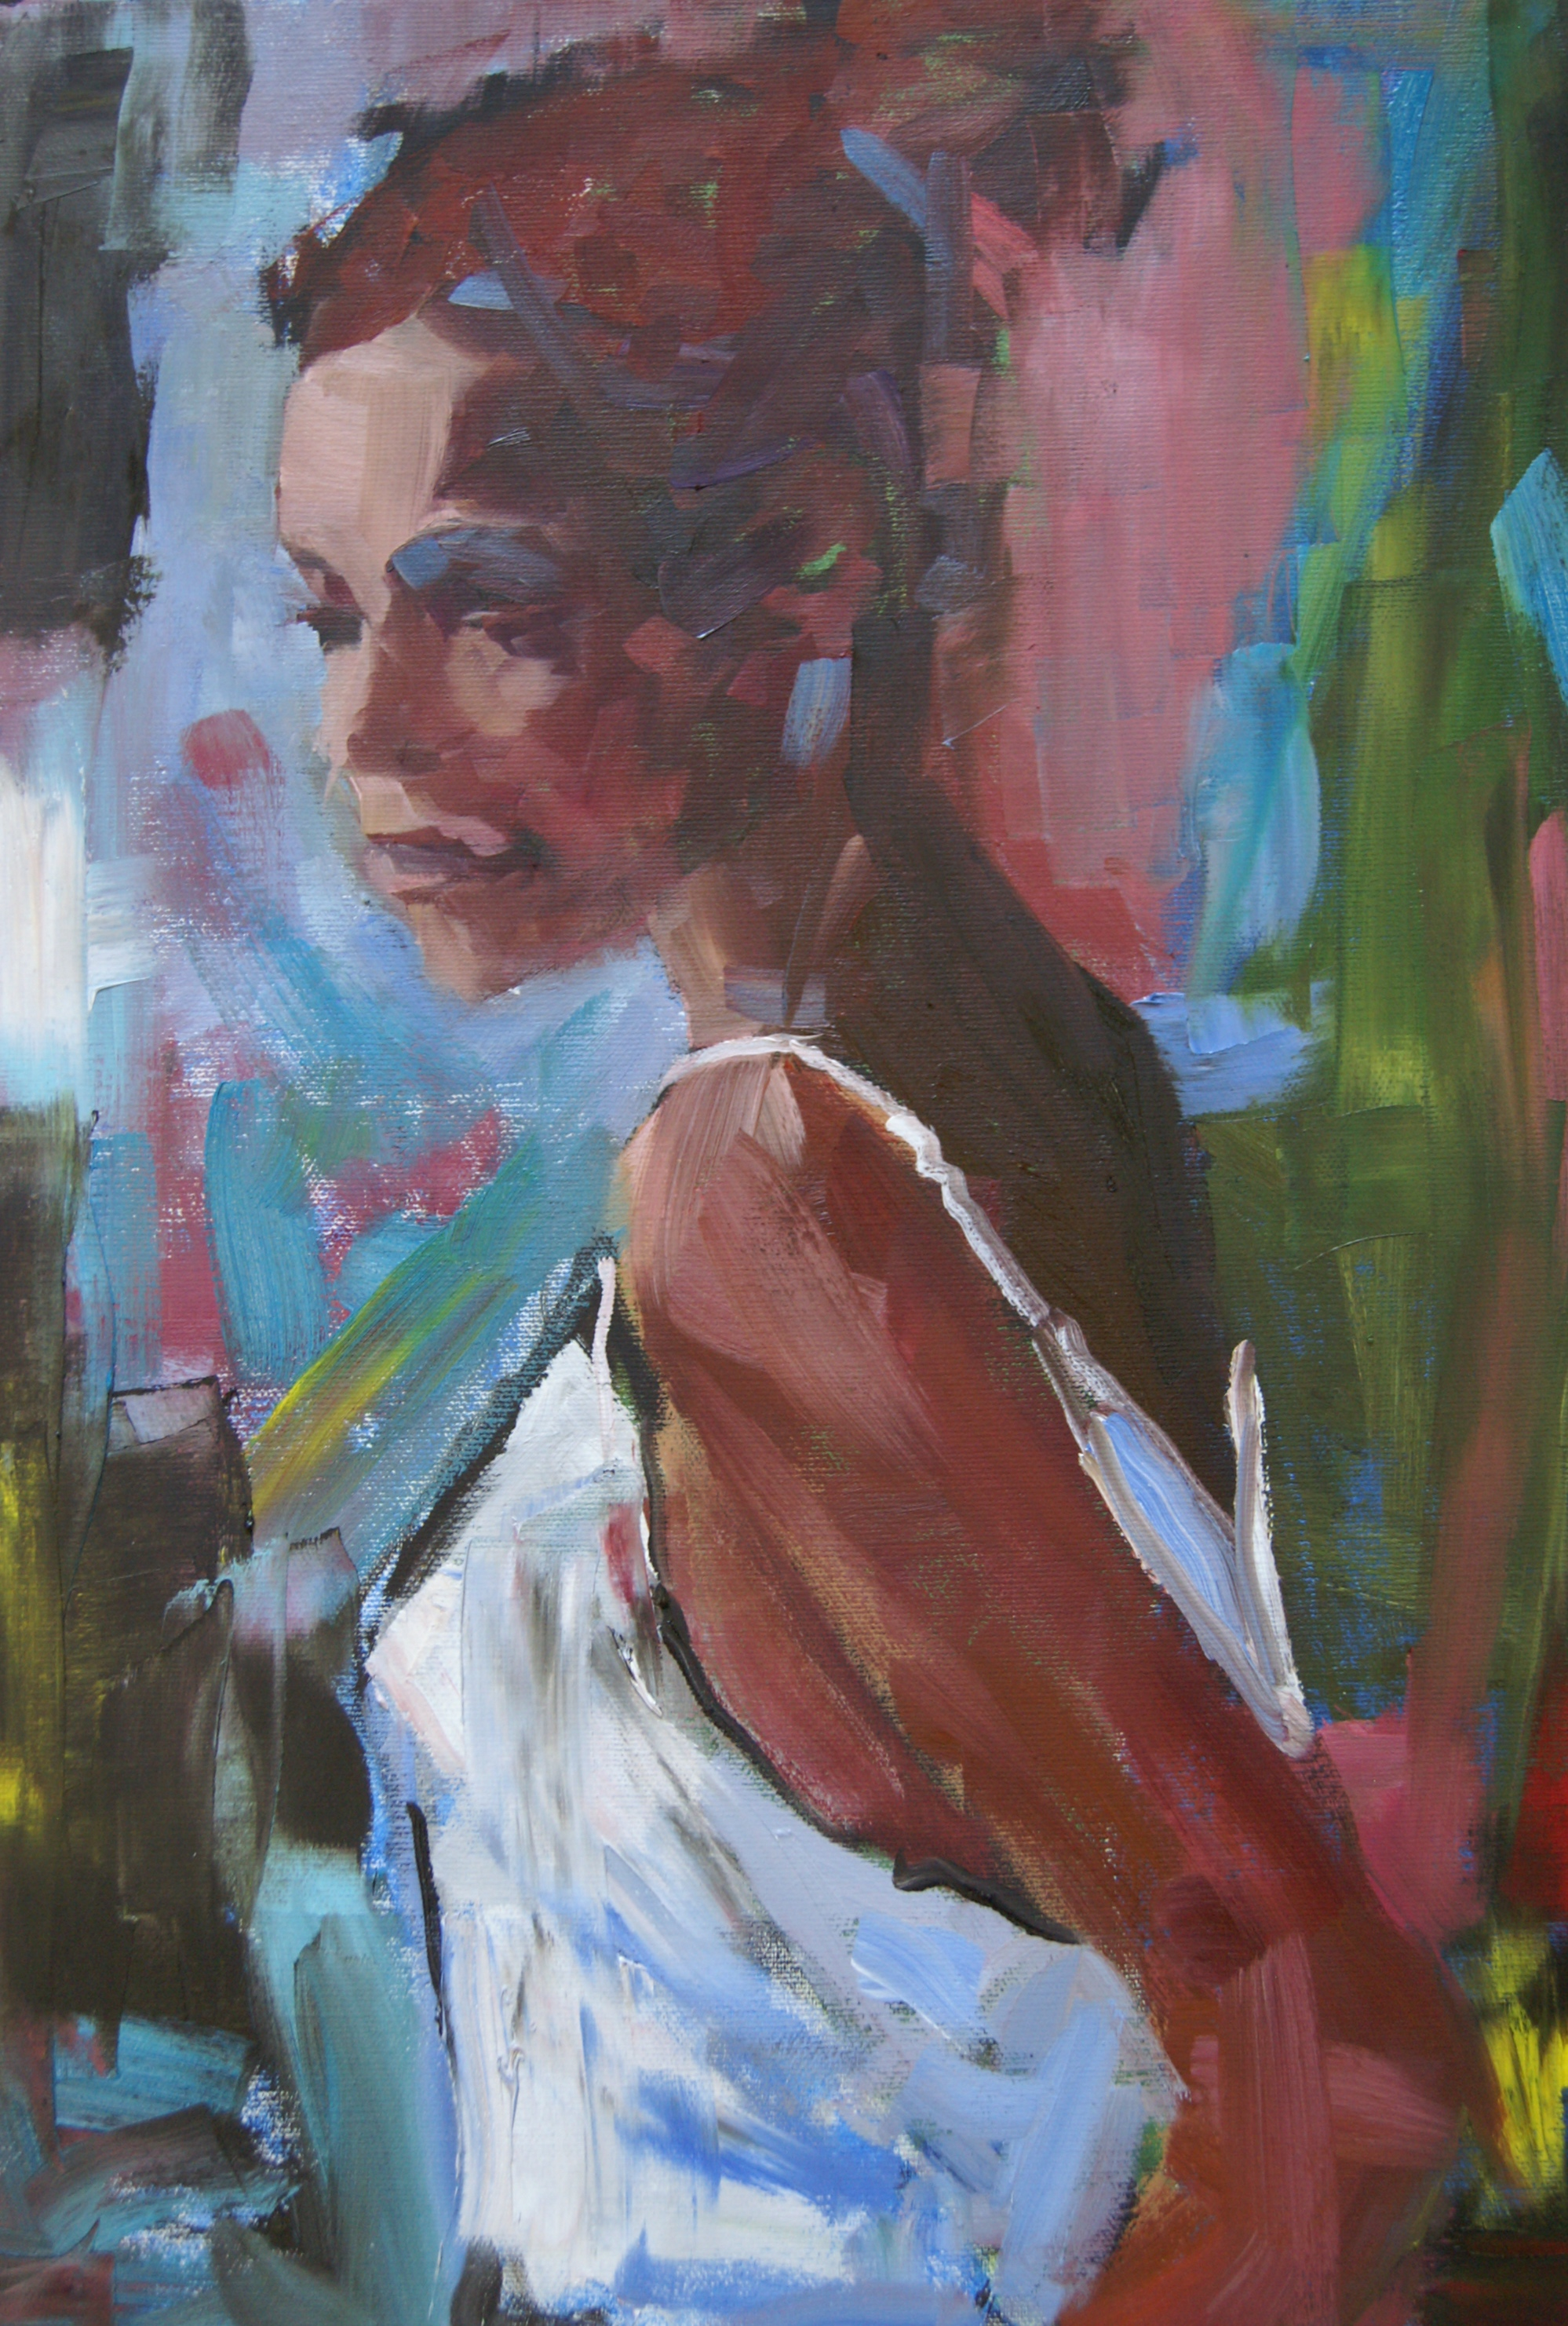 Woman in White (18x14 Oil on Board) - Available